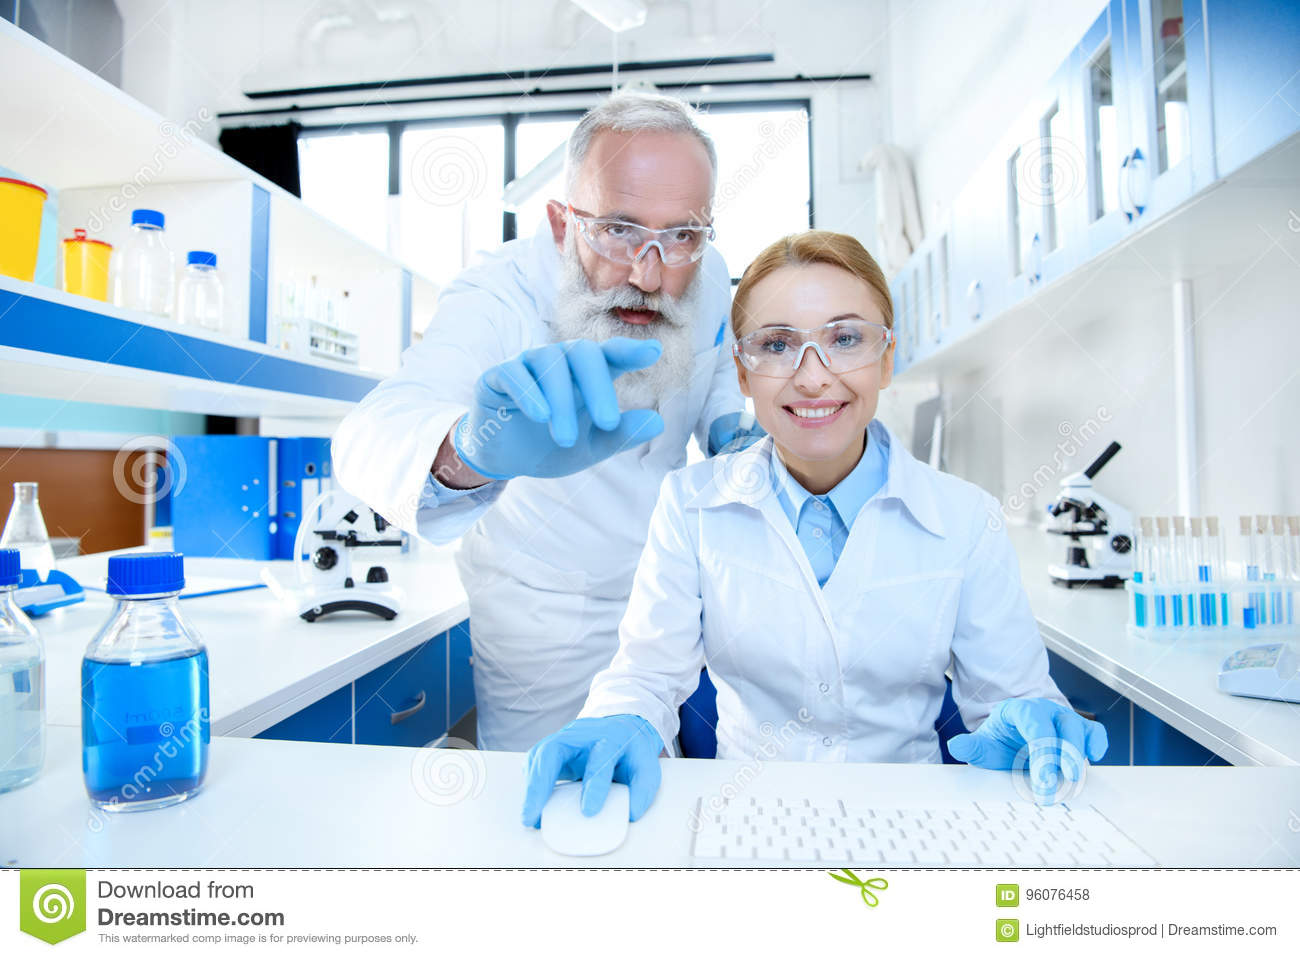 Scientists in protective eyeglasses working together in lab and pointing at camera